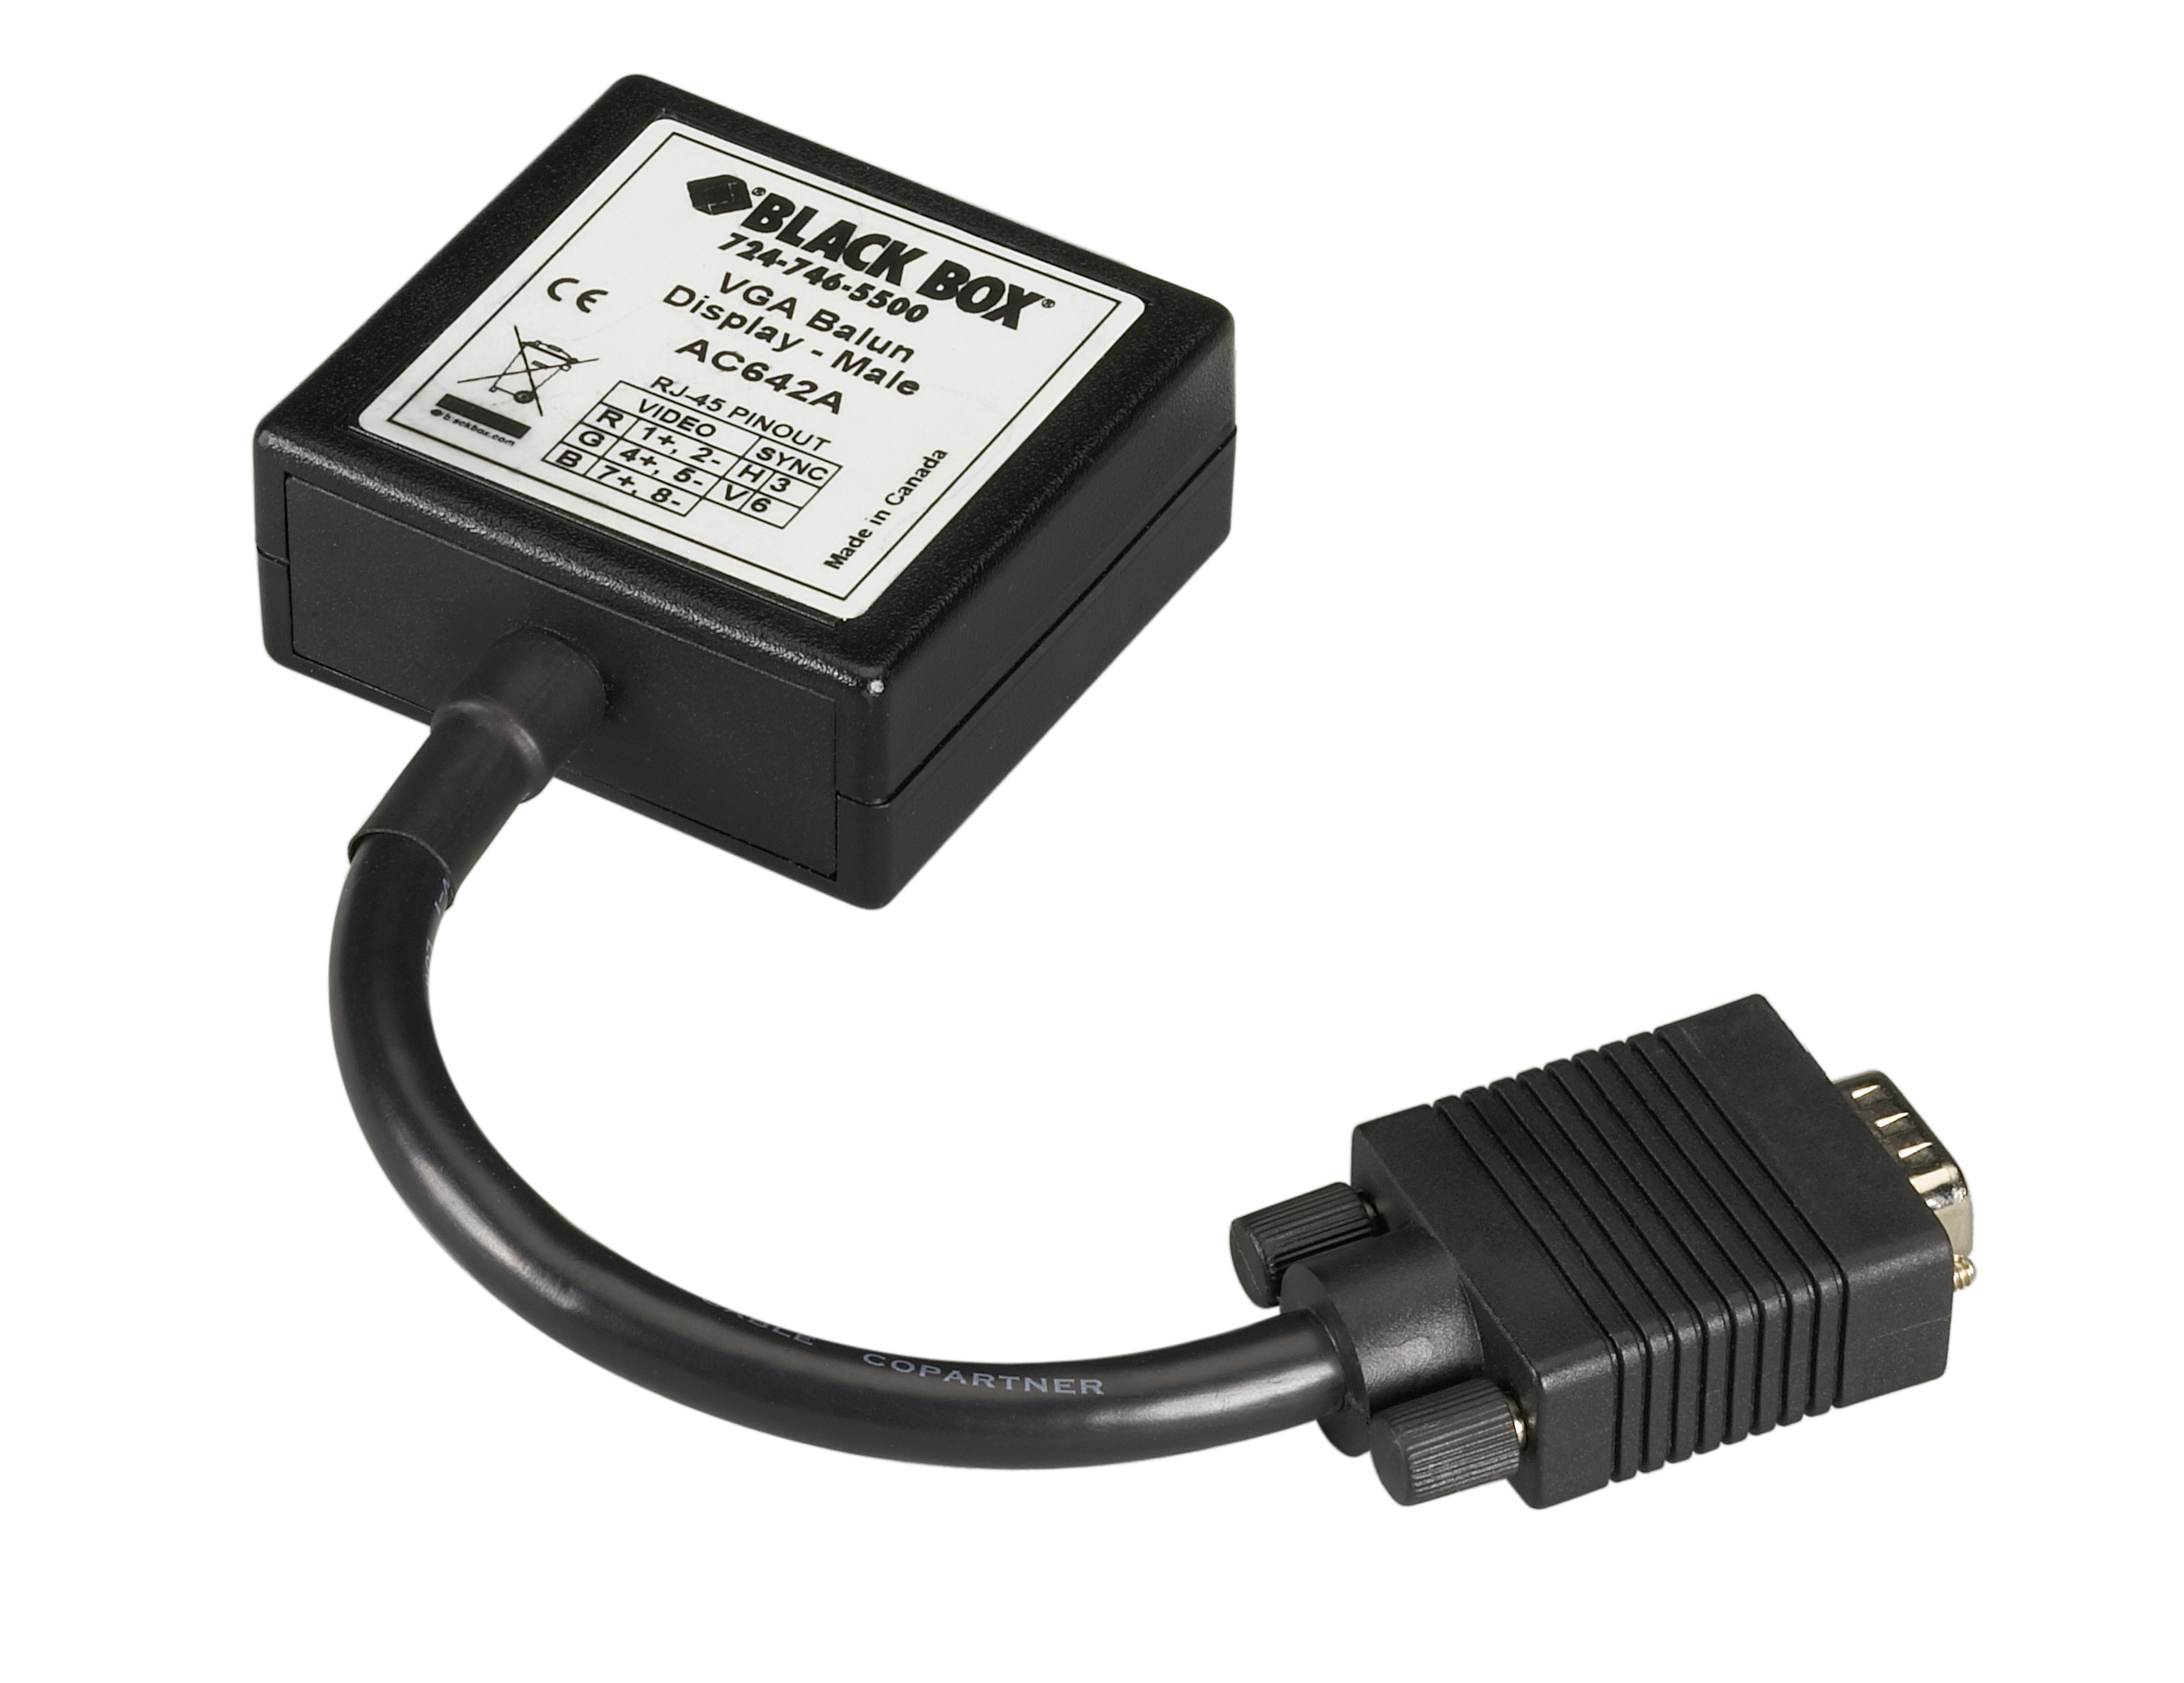 VGA Display Balun, Male